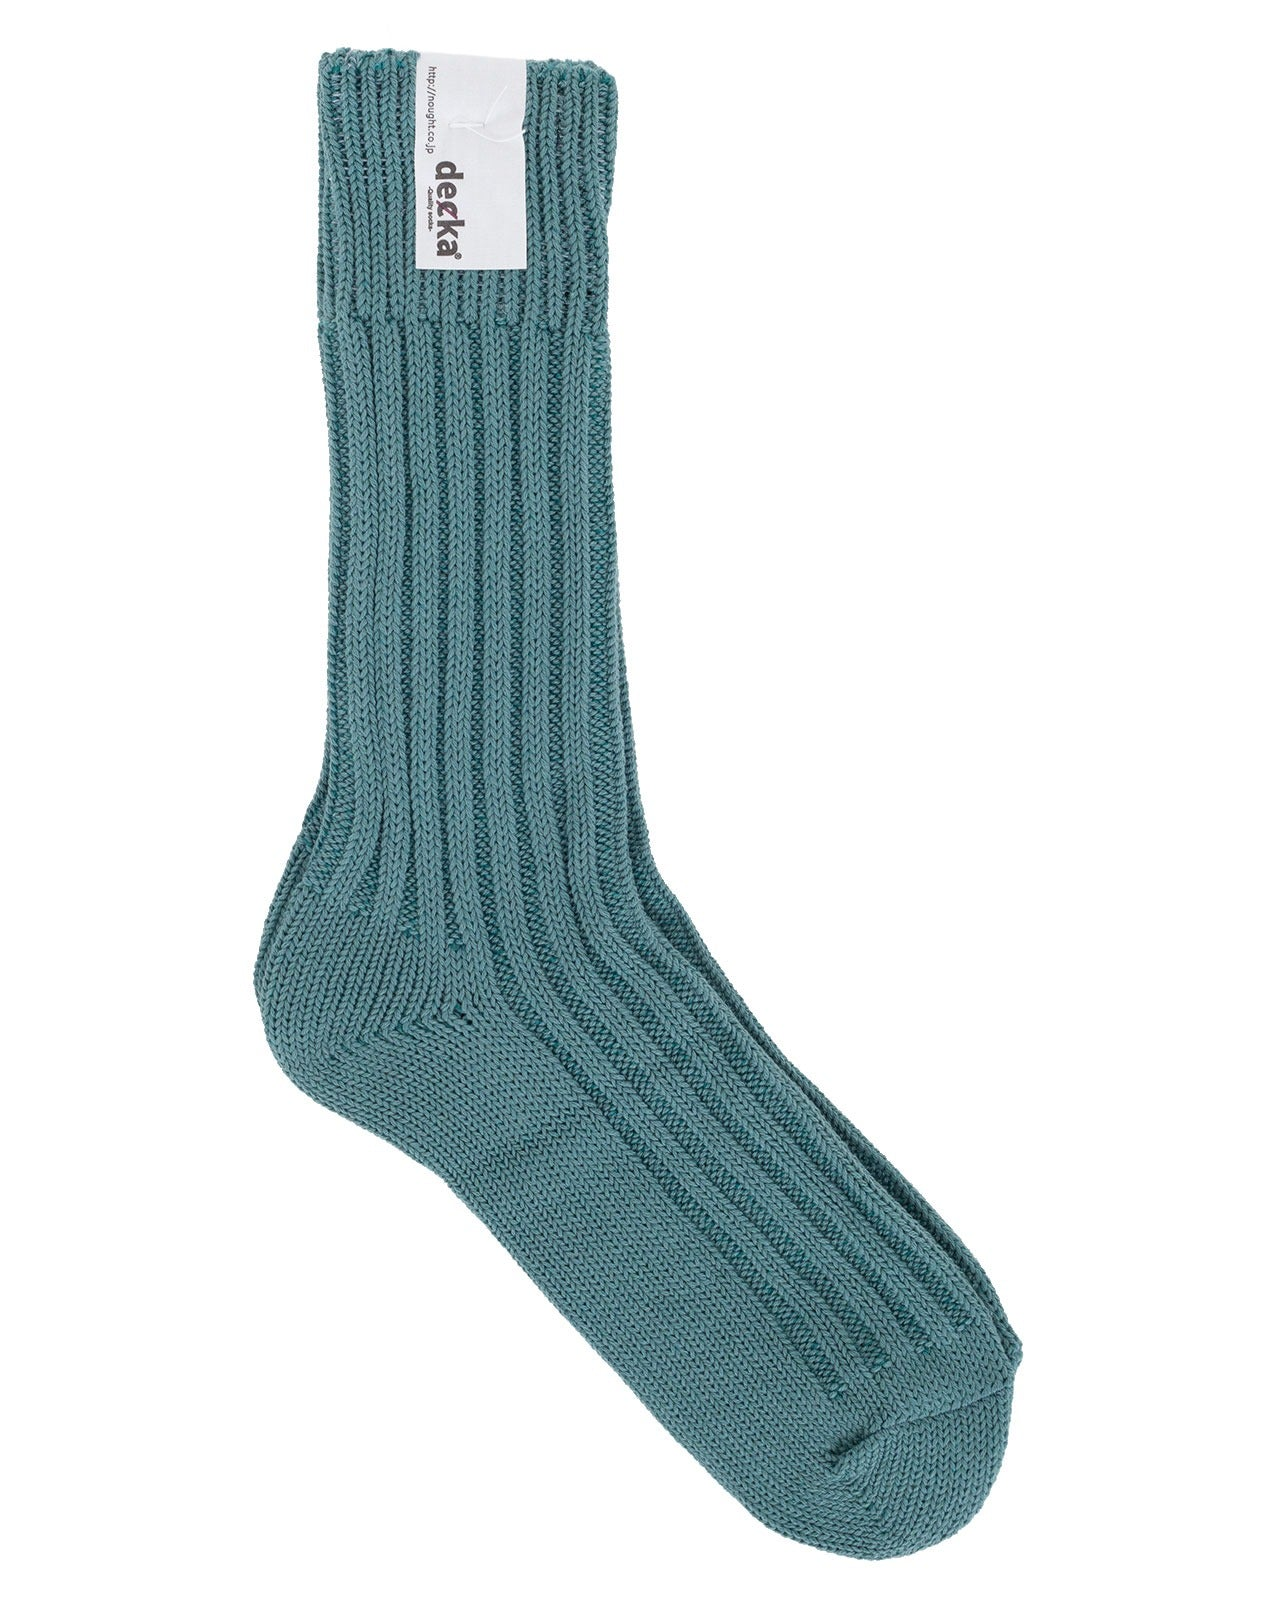 Decka Cased Heavy Weight Plain Socks, Cadel Blue